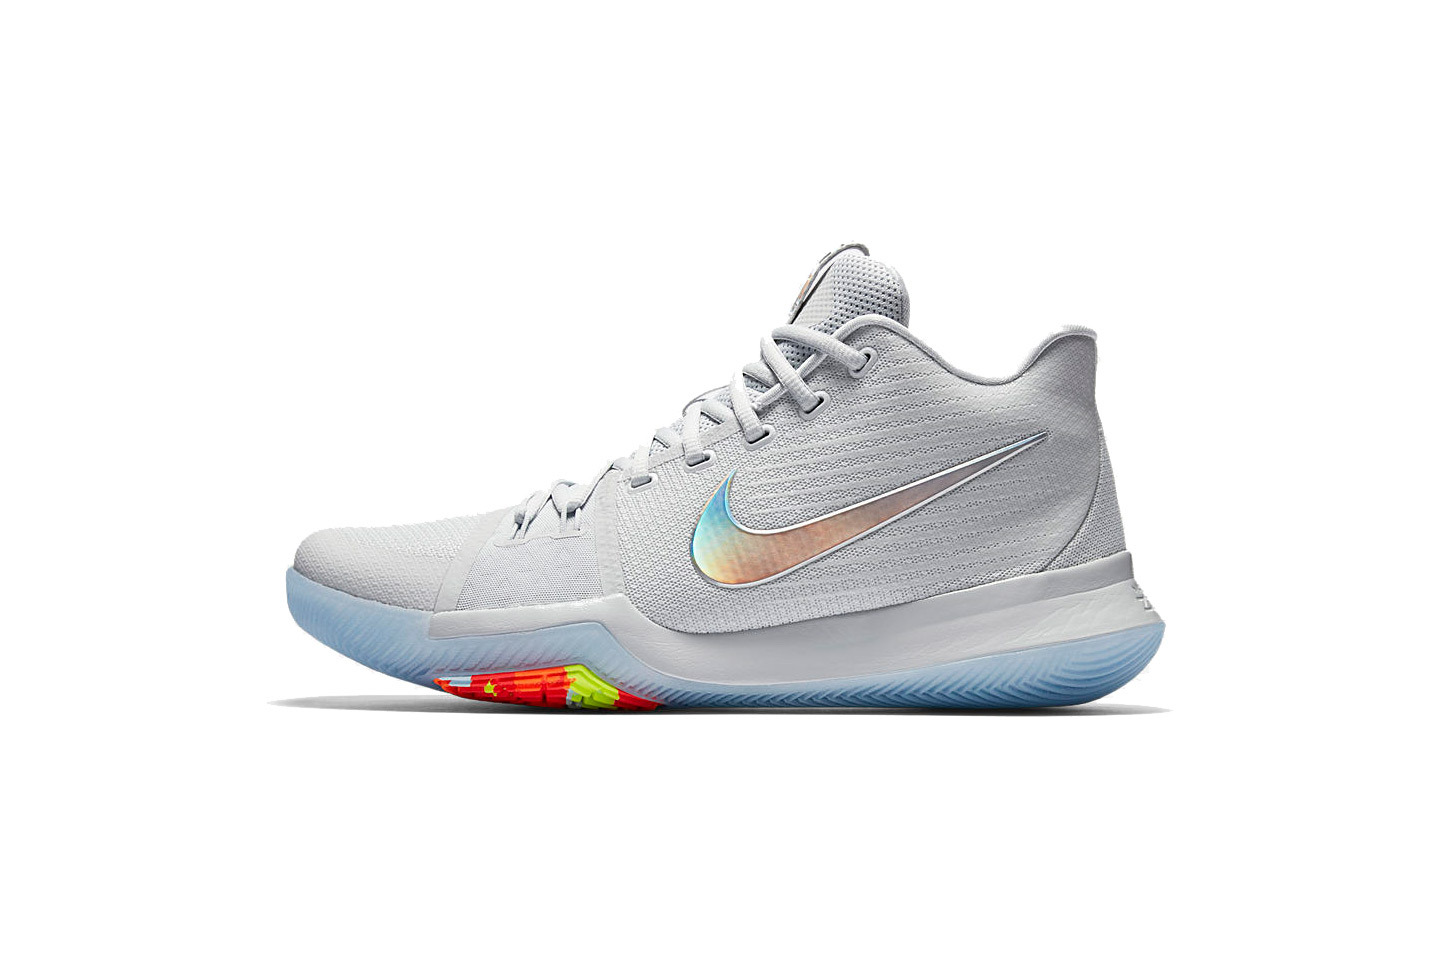 nike time to shine - Kyrie 3 - elle man 1